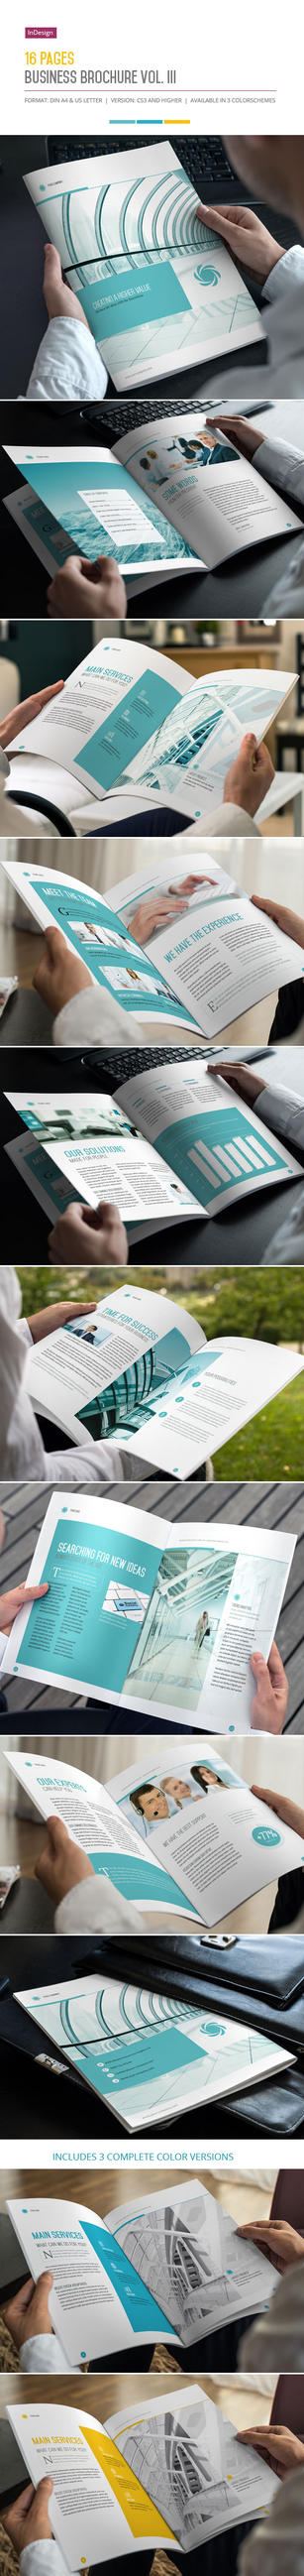 16 Pages Business Brochure Vol. III by imagearea